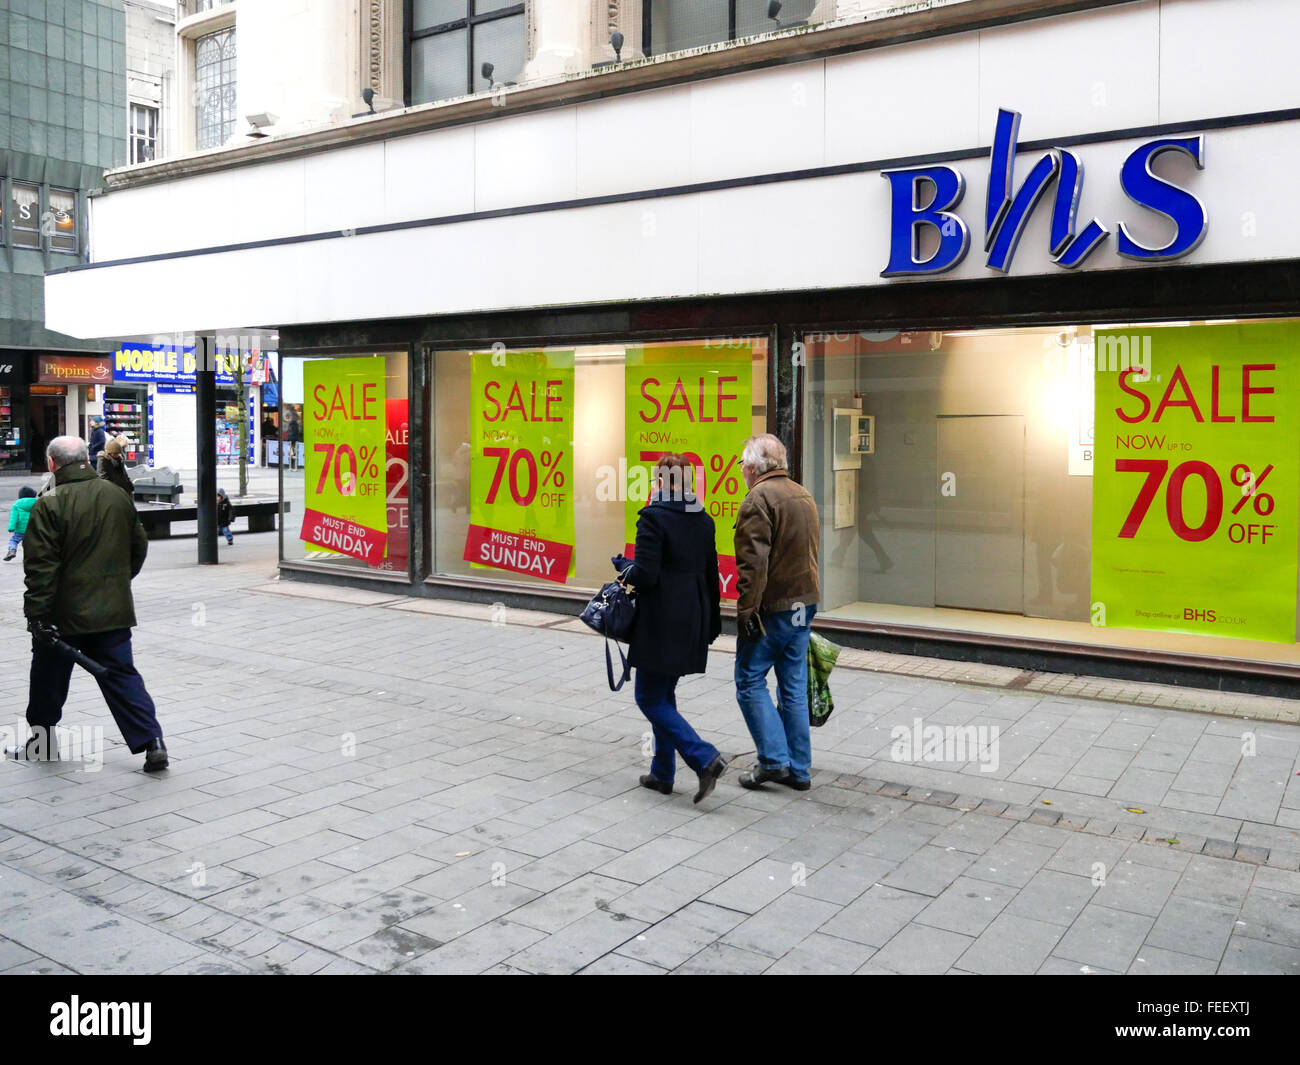 British Home Stores Shop displays a sale promotion in Southport during the January Sales. Stock Photo